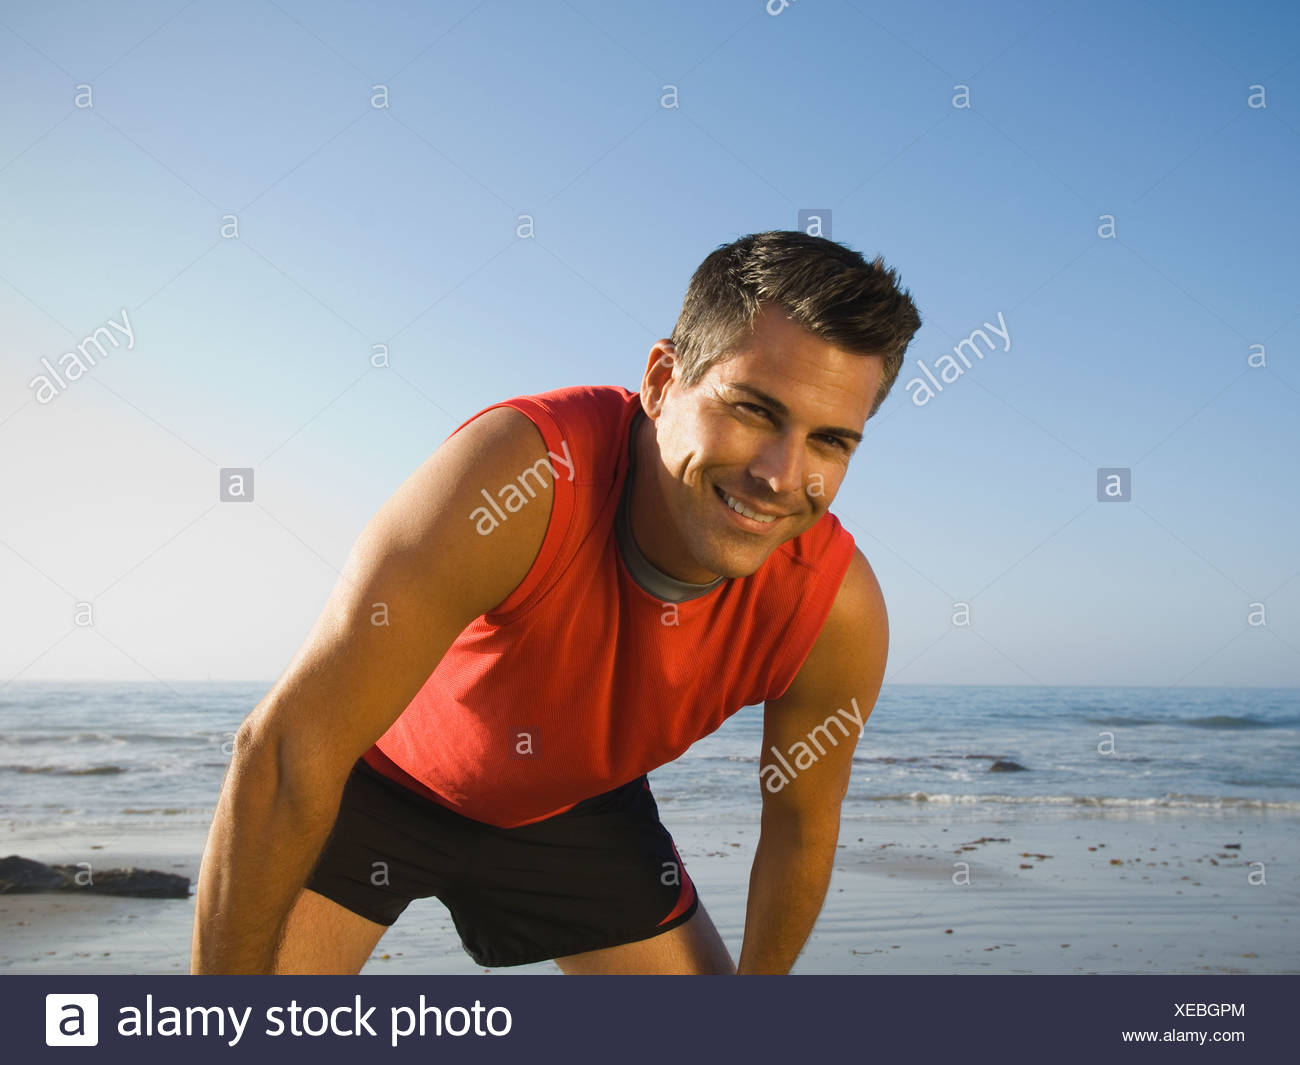 Man in athletic gear at beach - Stock Image